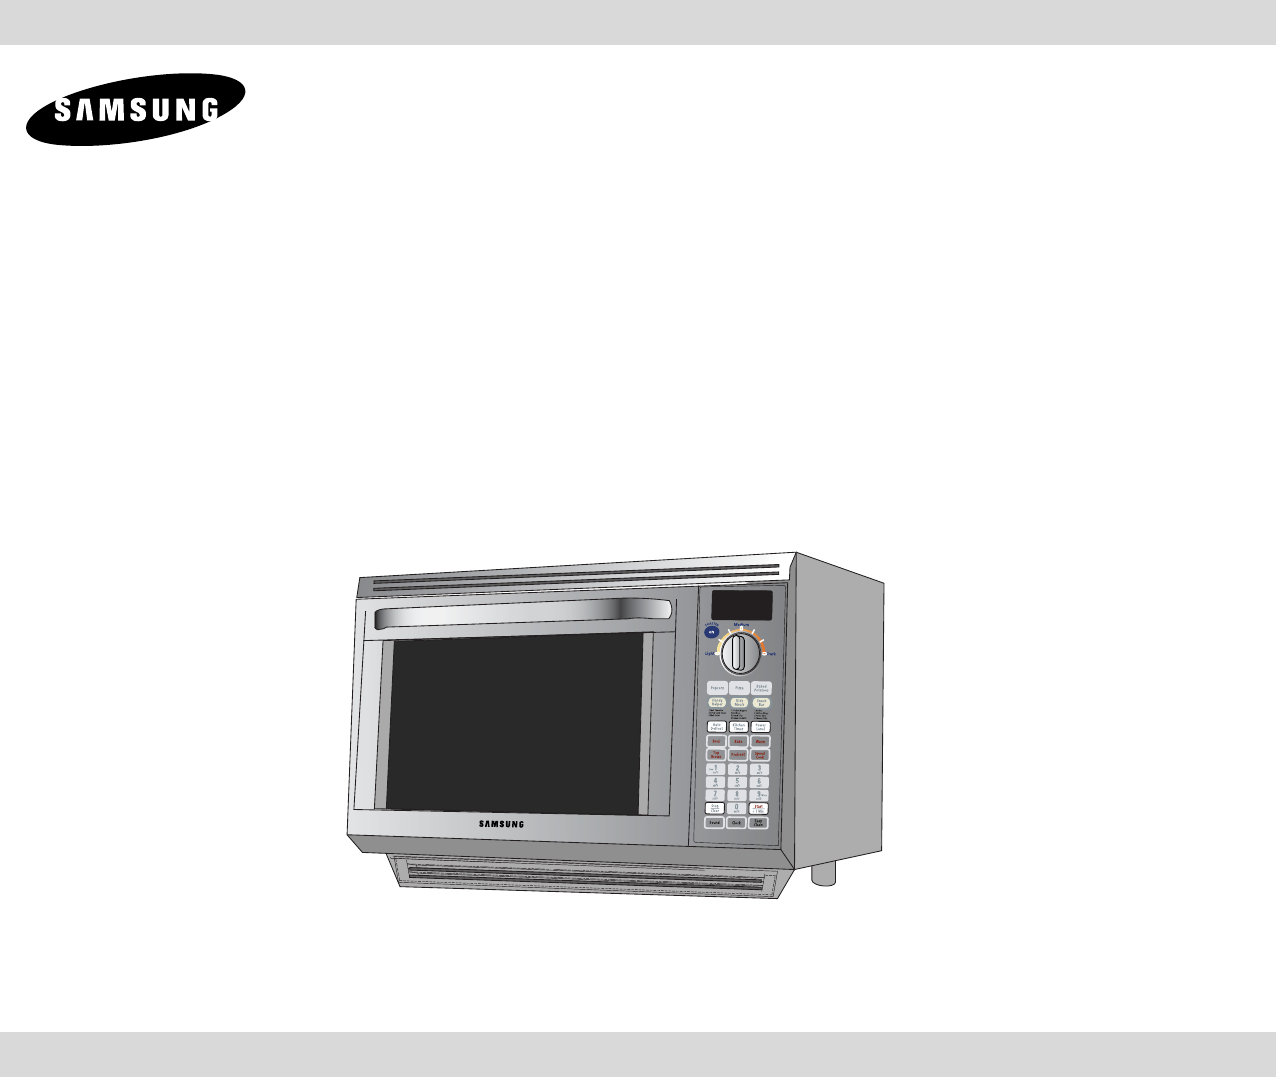 User Manual Samsung Microwave Oven: Samsung Microwave Oven MT1066SB User Guide